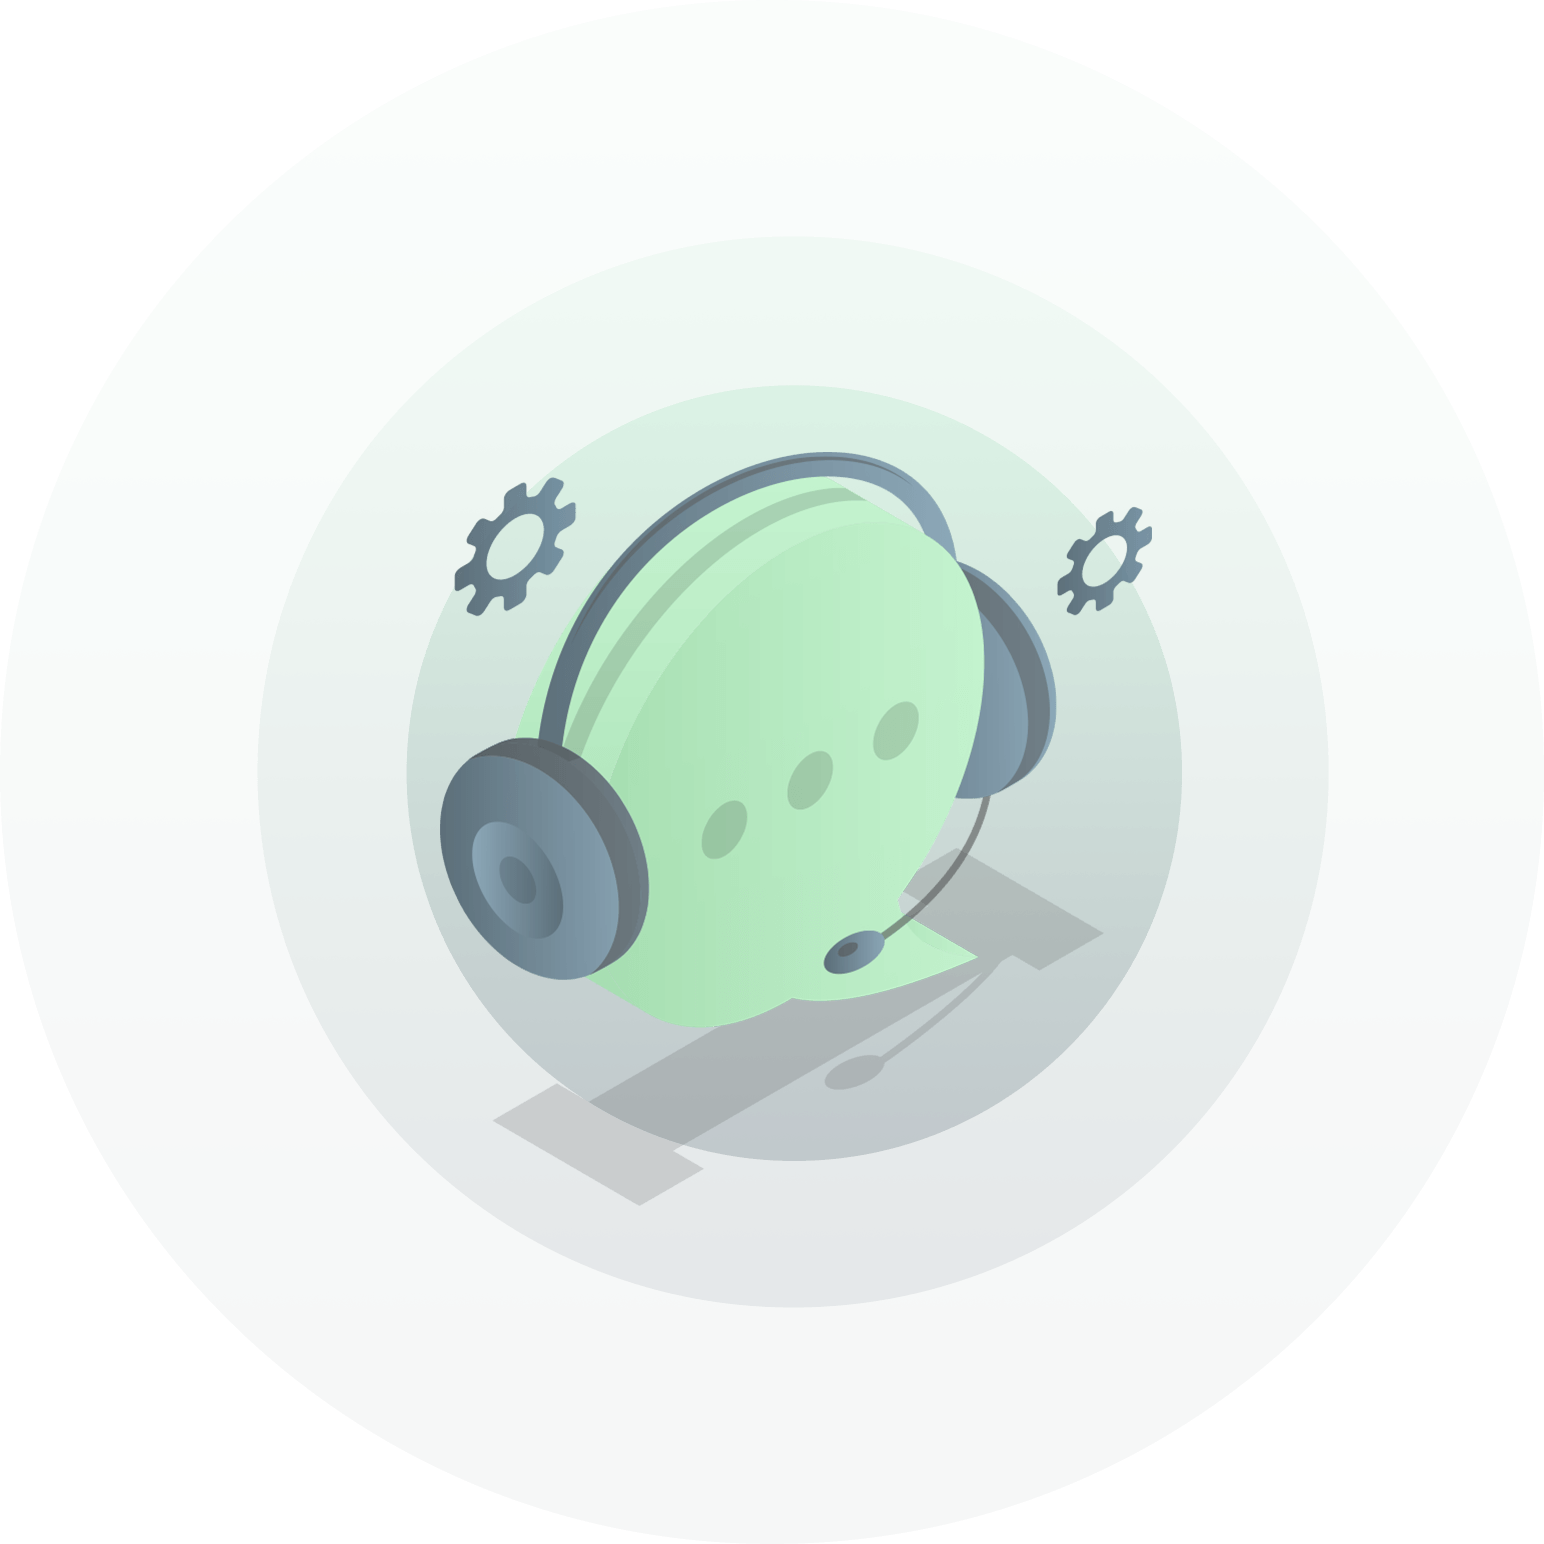 illustration of head set on contact bubble